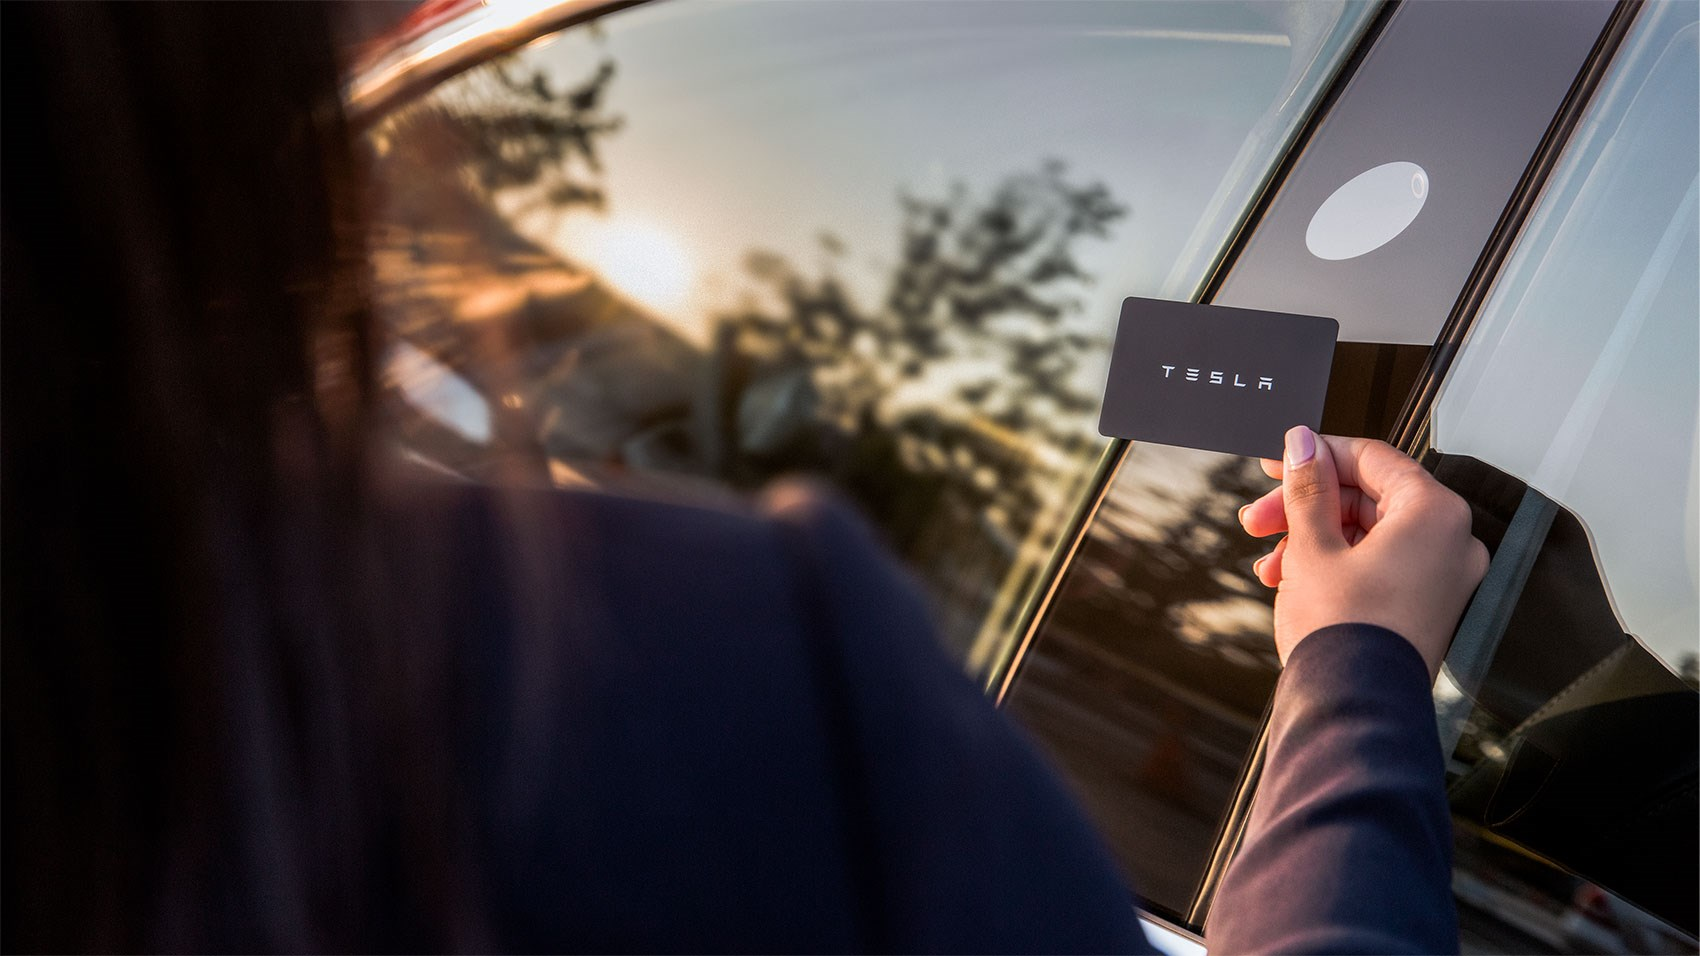 Hold up a Tesla credit card size access key to the B-pillar to unlock the Model 3